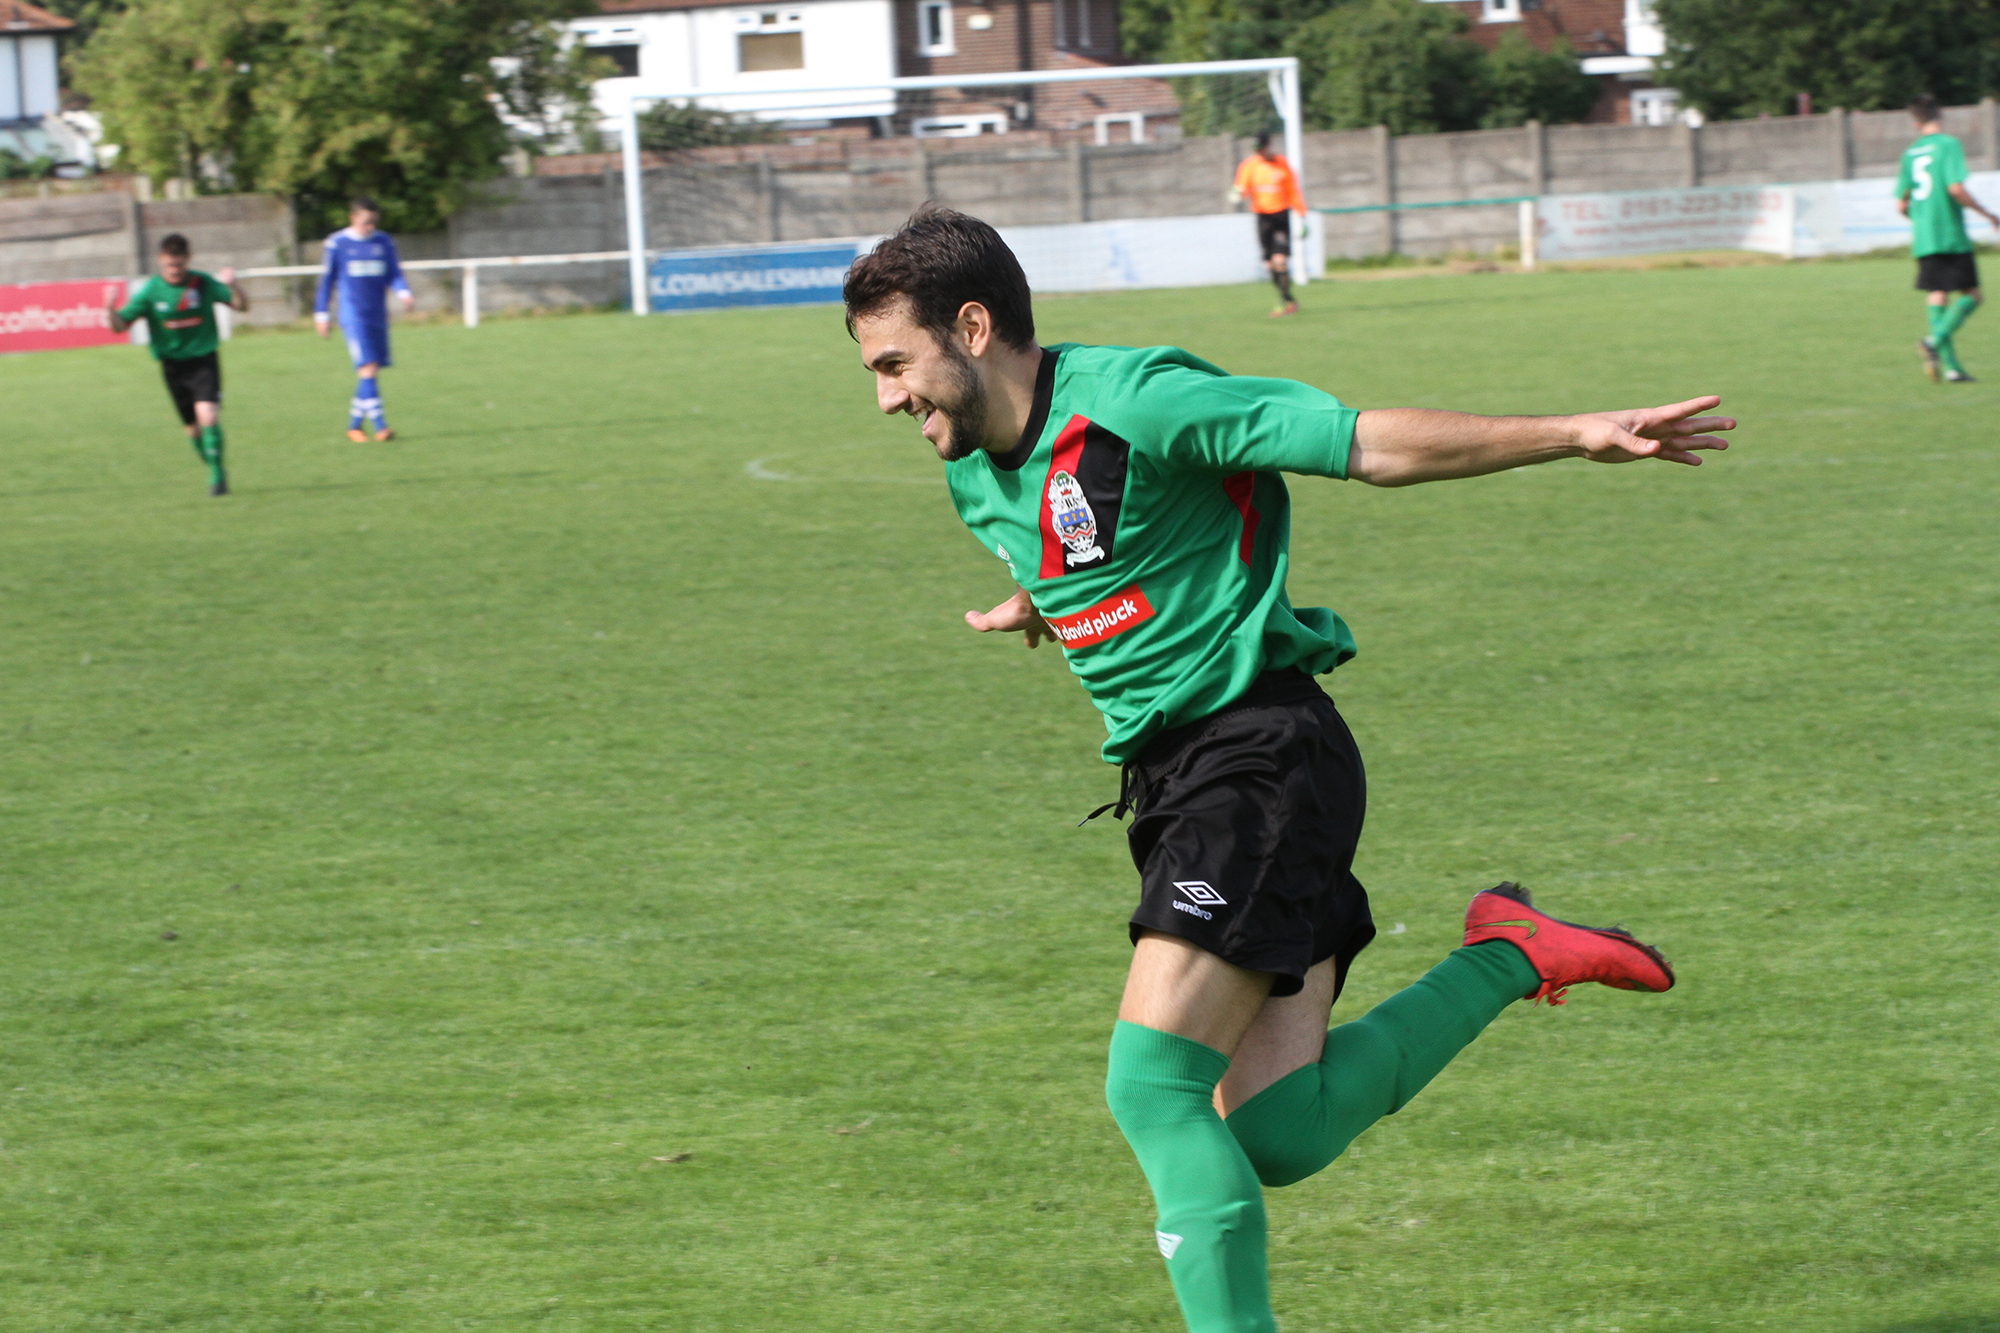 'Spanish Kev' wheels away after giving us a 3-0 lead